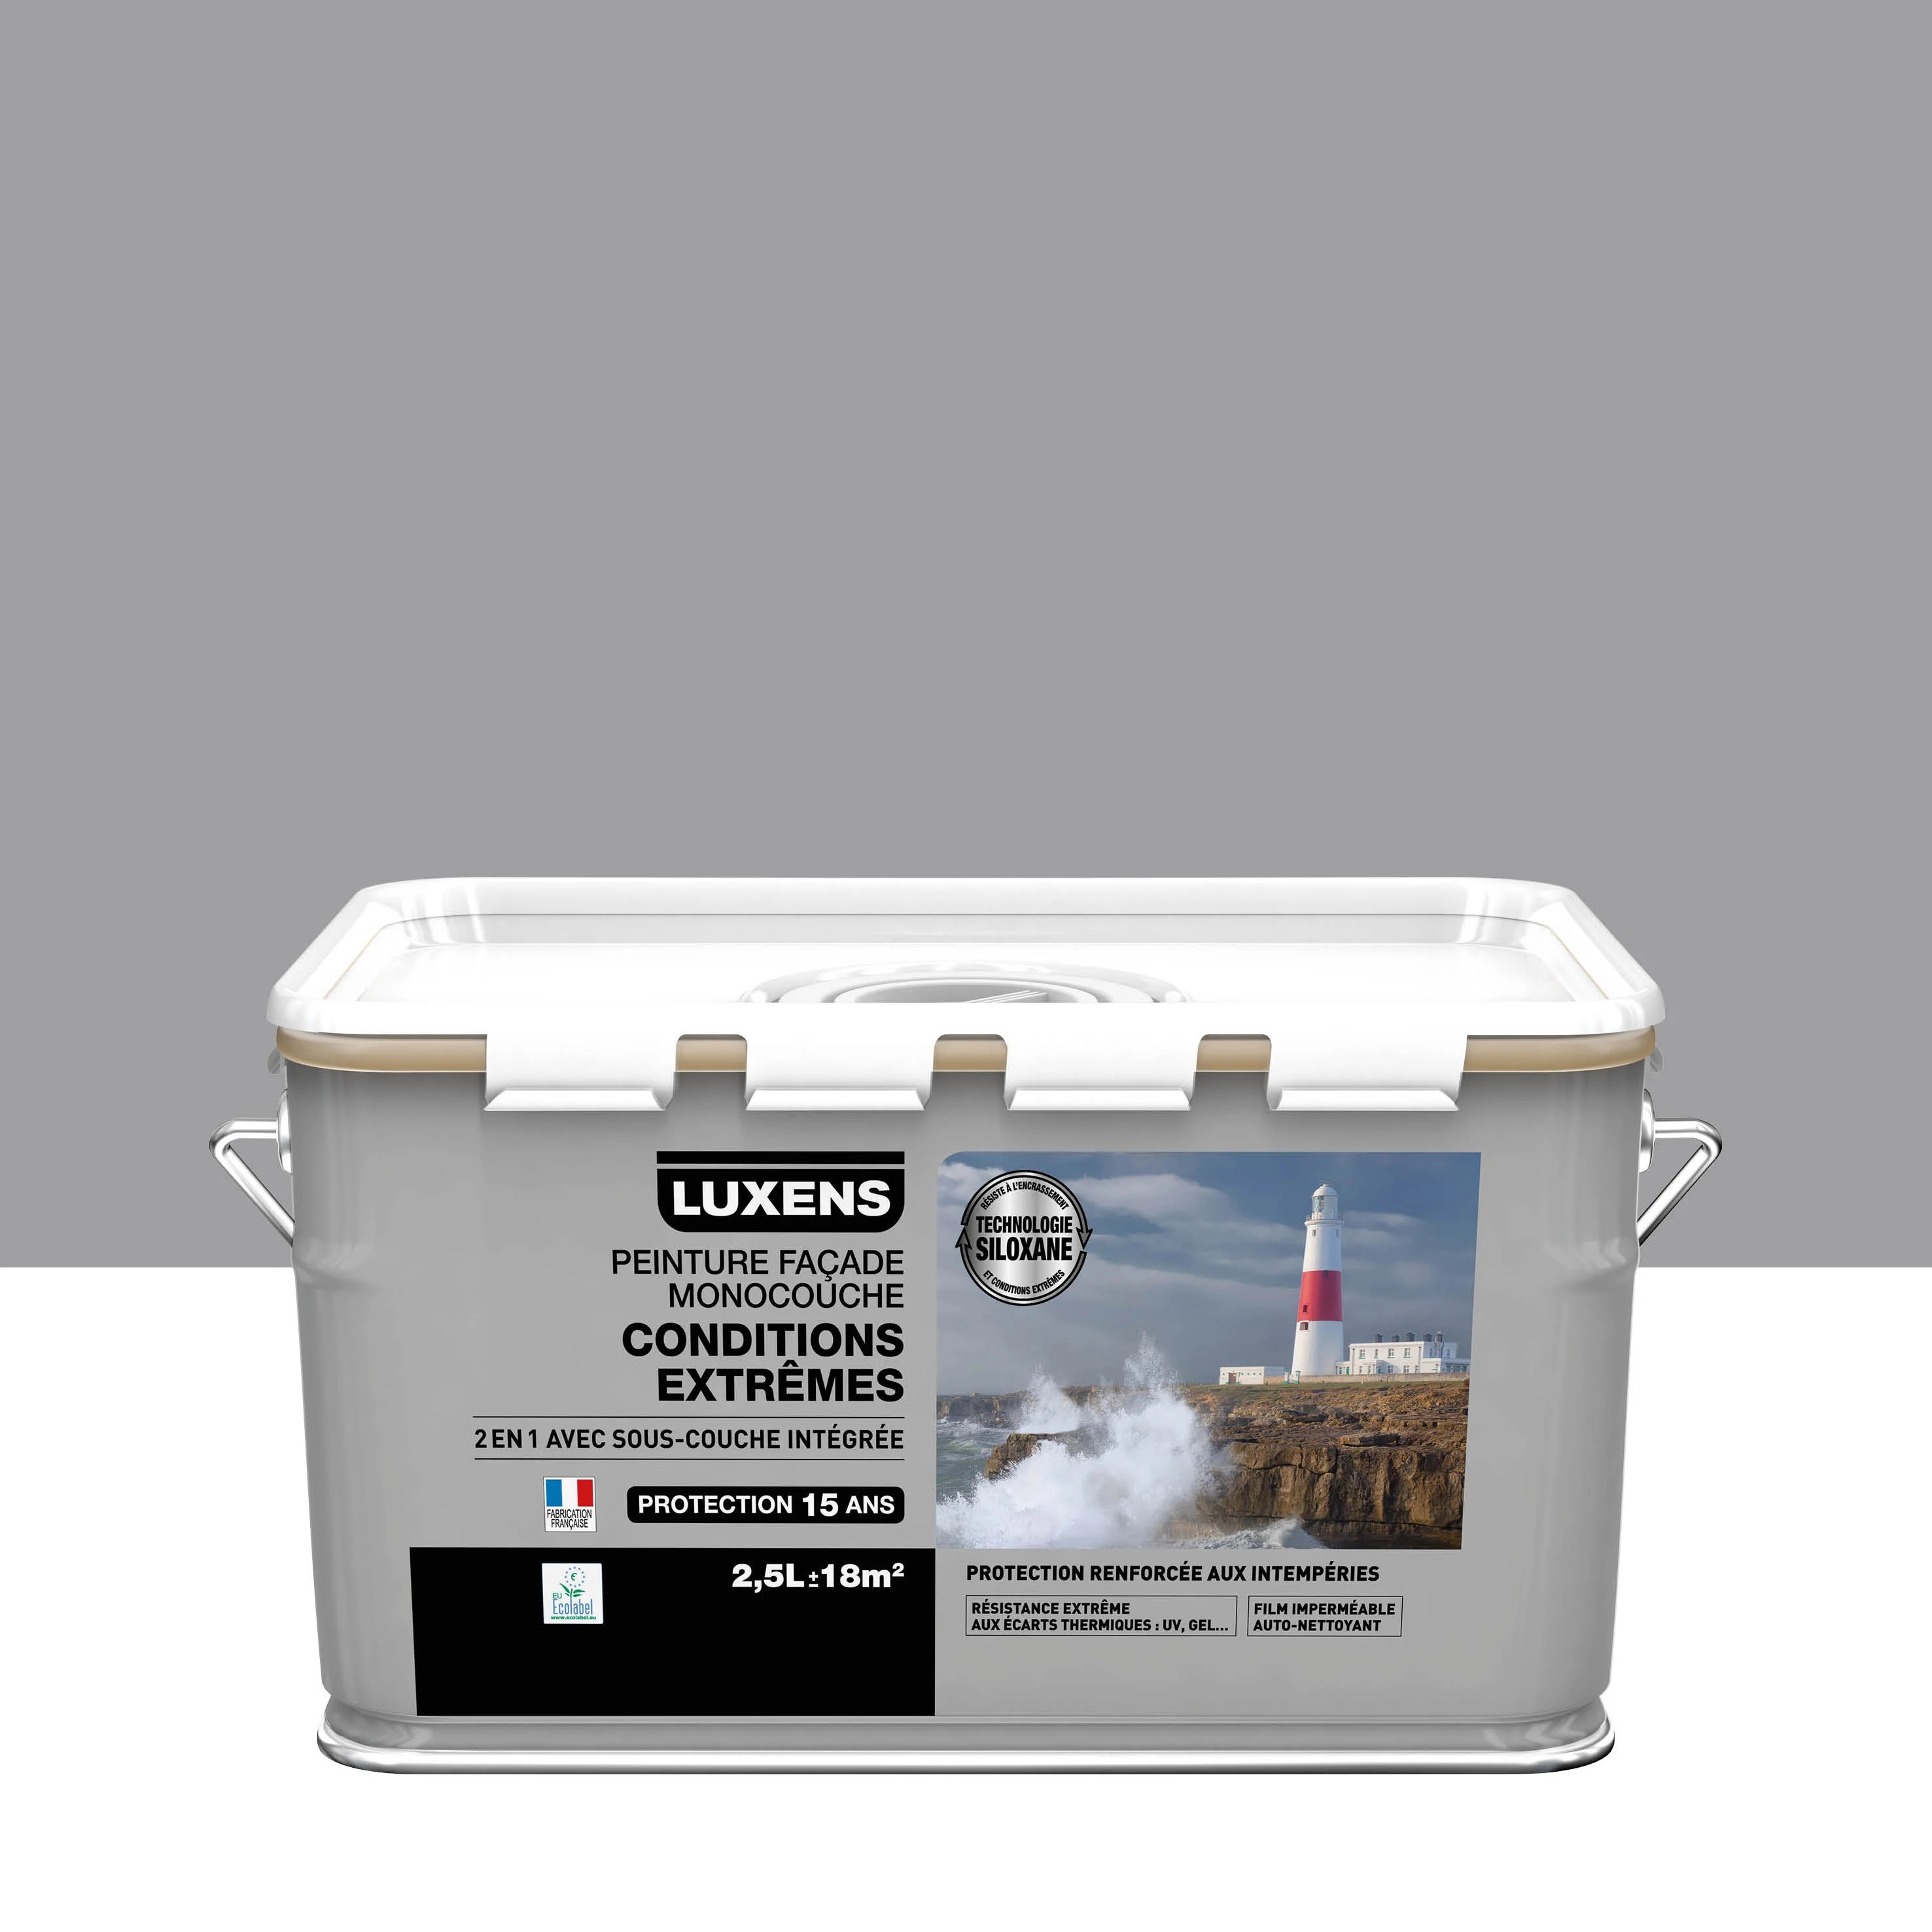 Peinture Facade Conditions Extremes Luxens Gris2 2 5 L Leroy Merlin